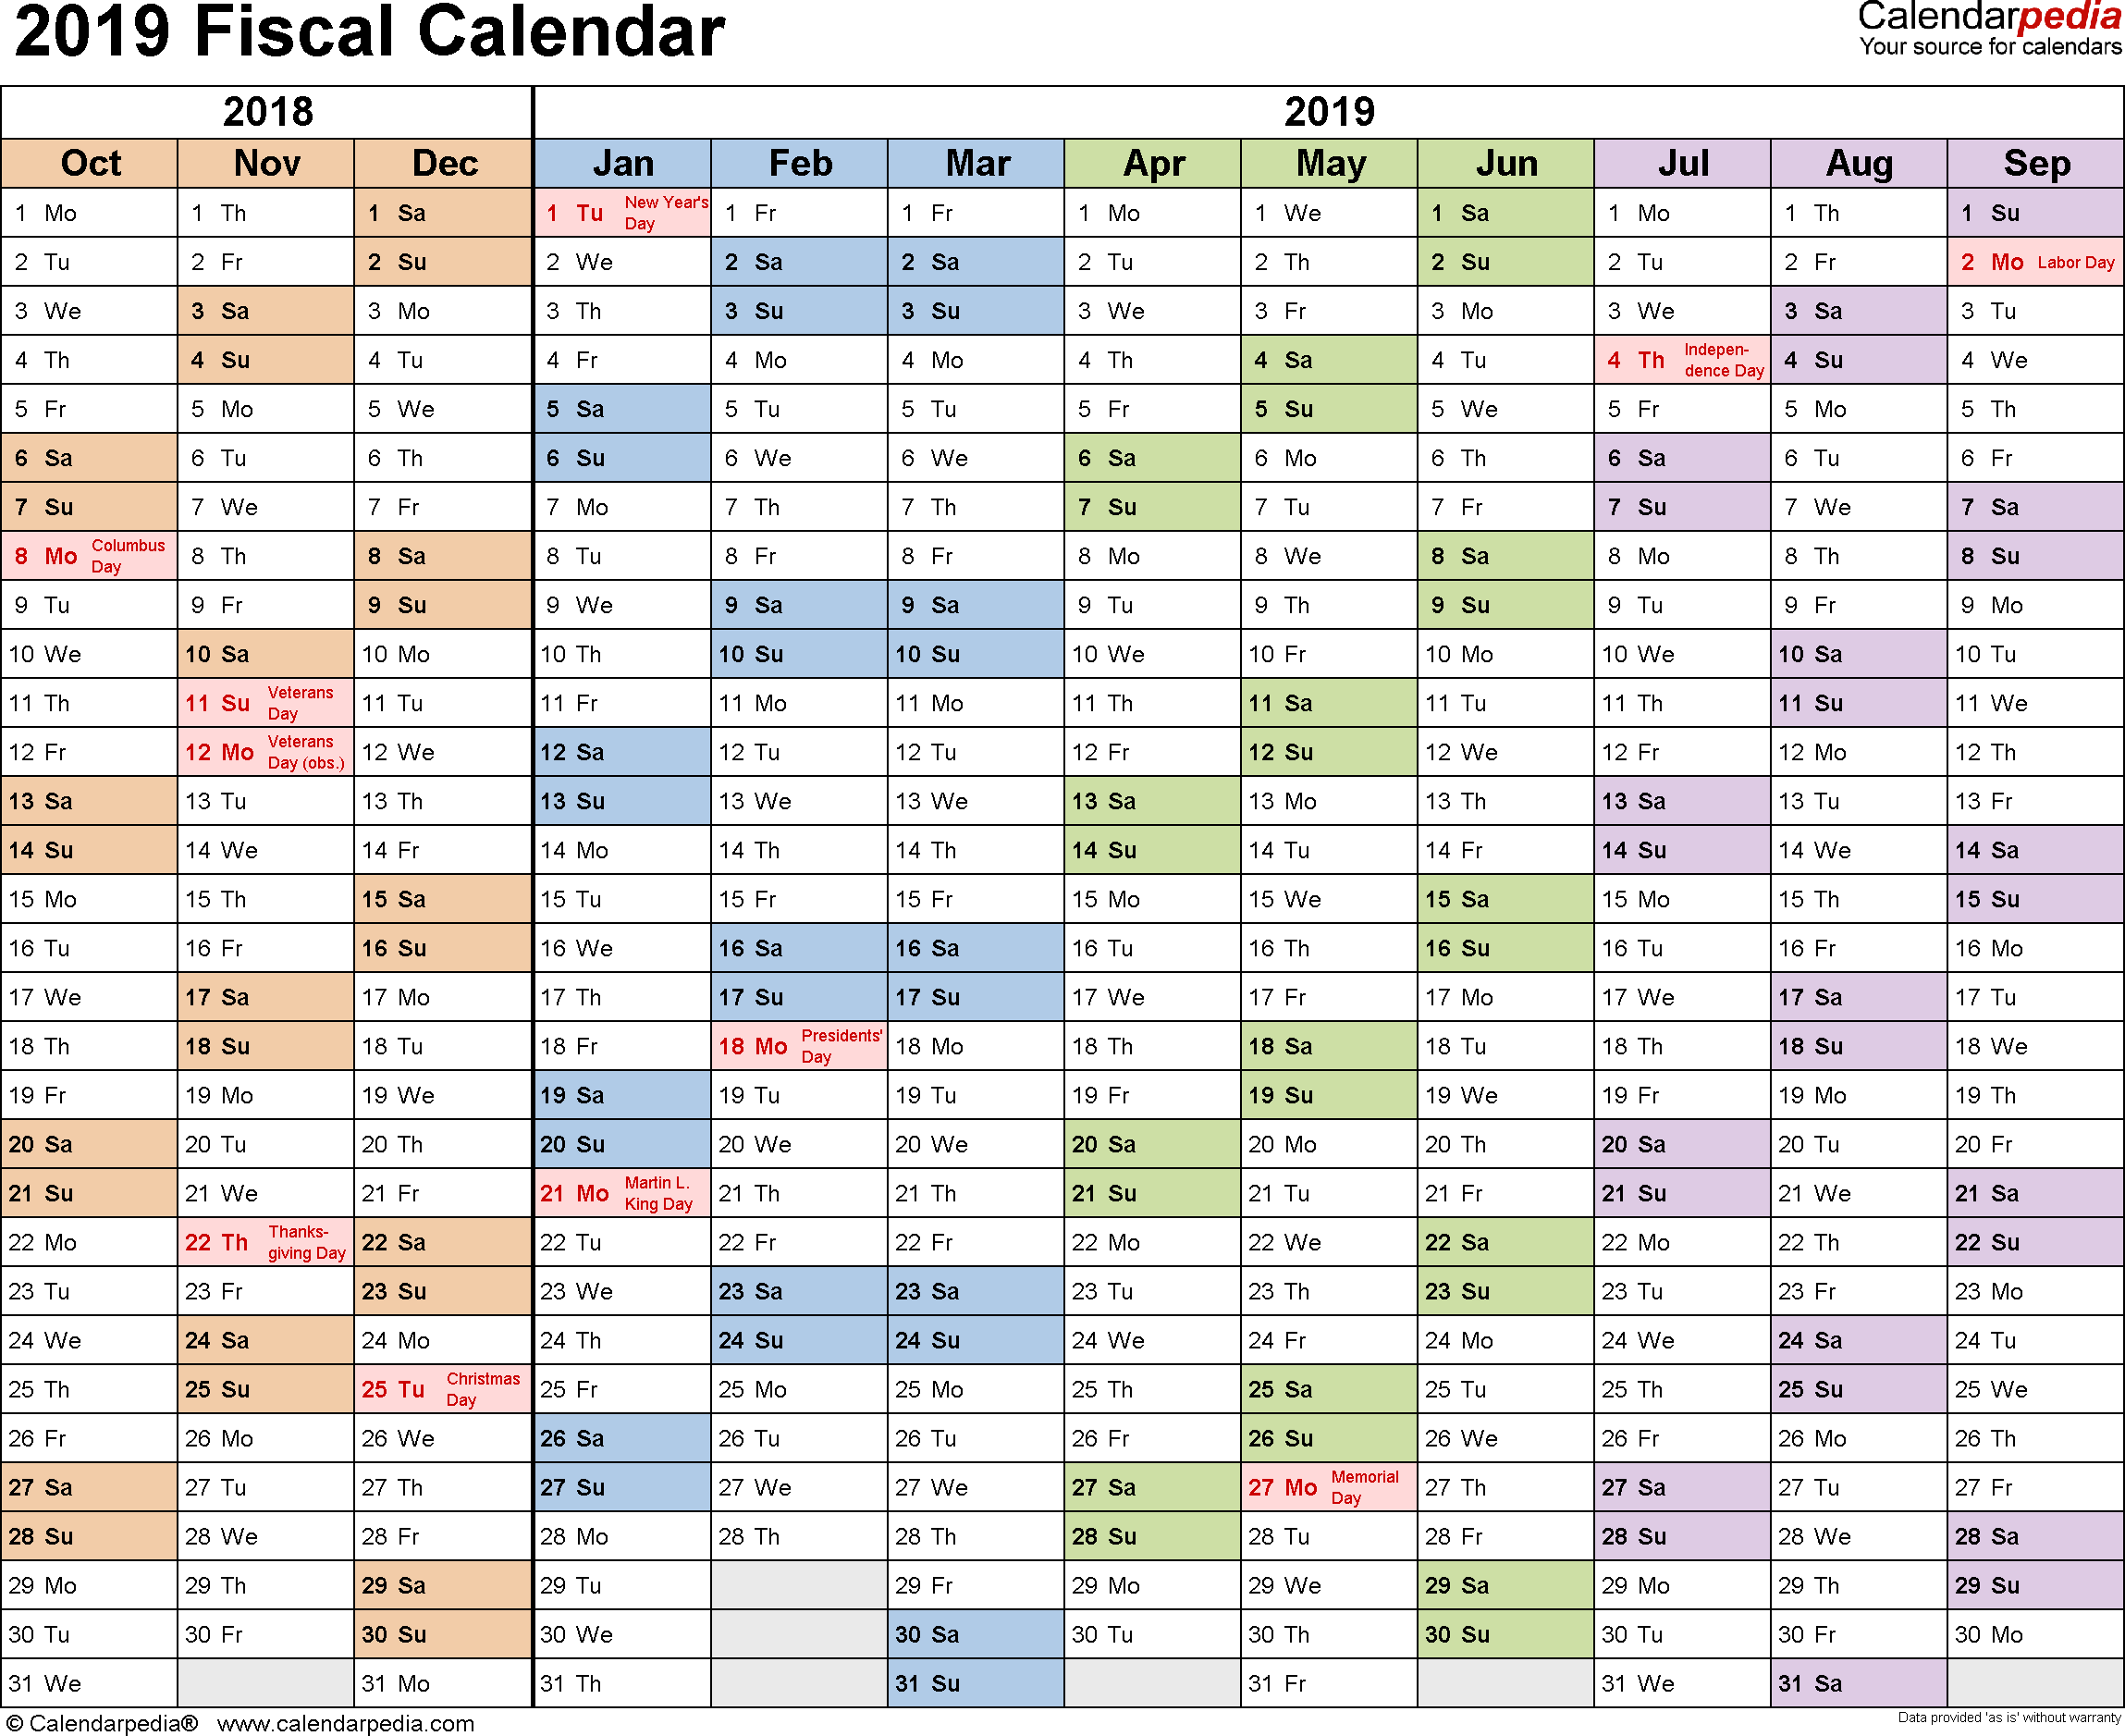 Australian 2019 Year Calendar With Fiscal Calendars As Free Printable Word Templates